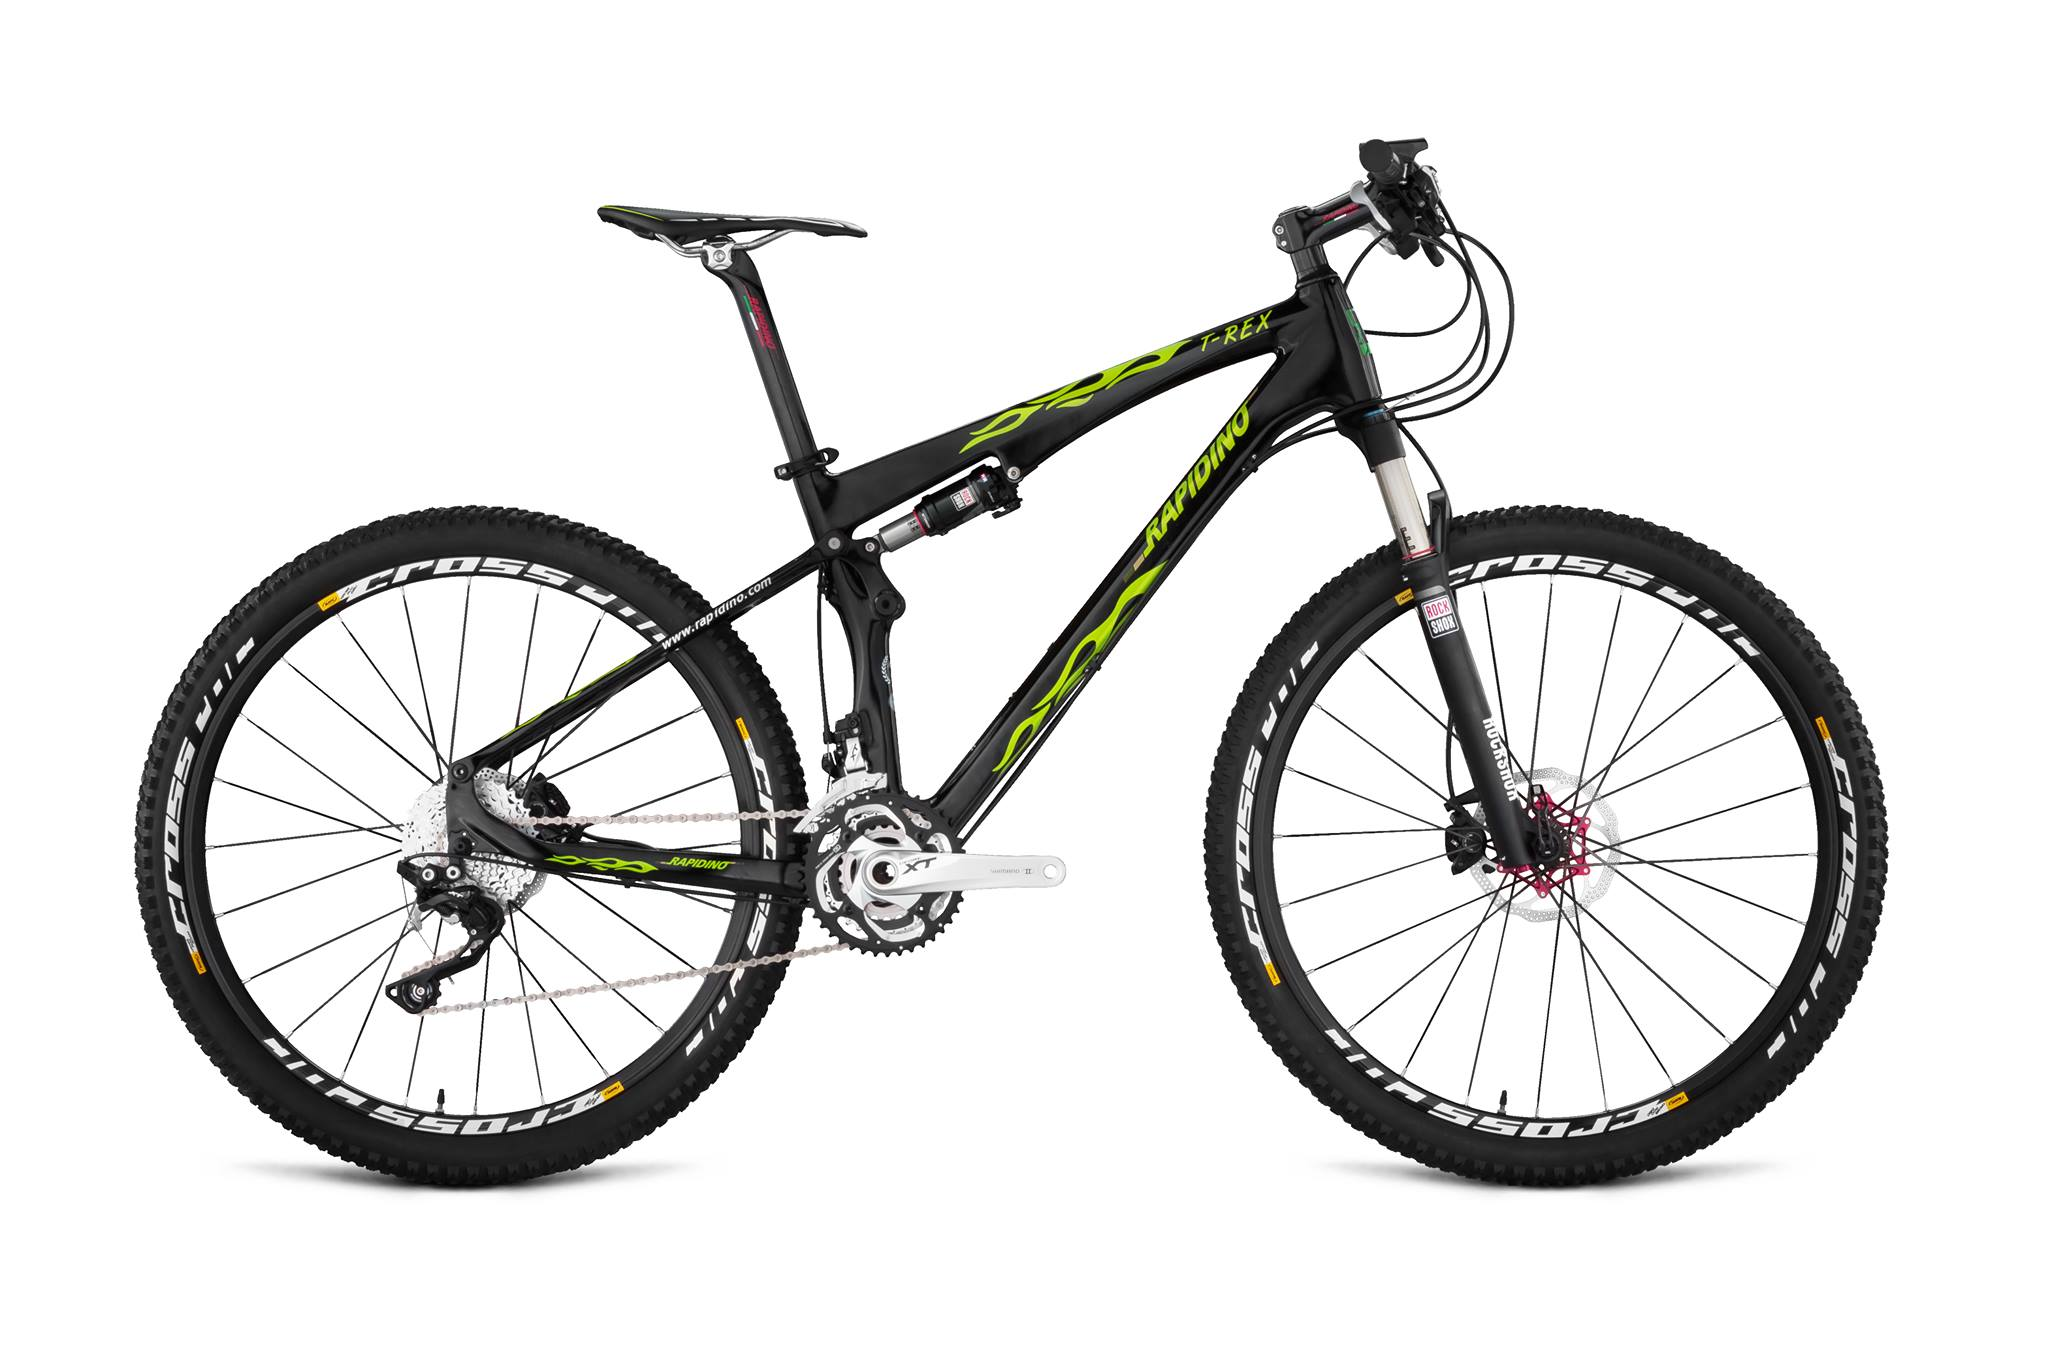 Trex Mountain Bike